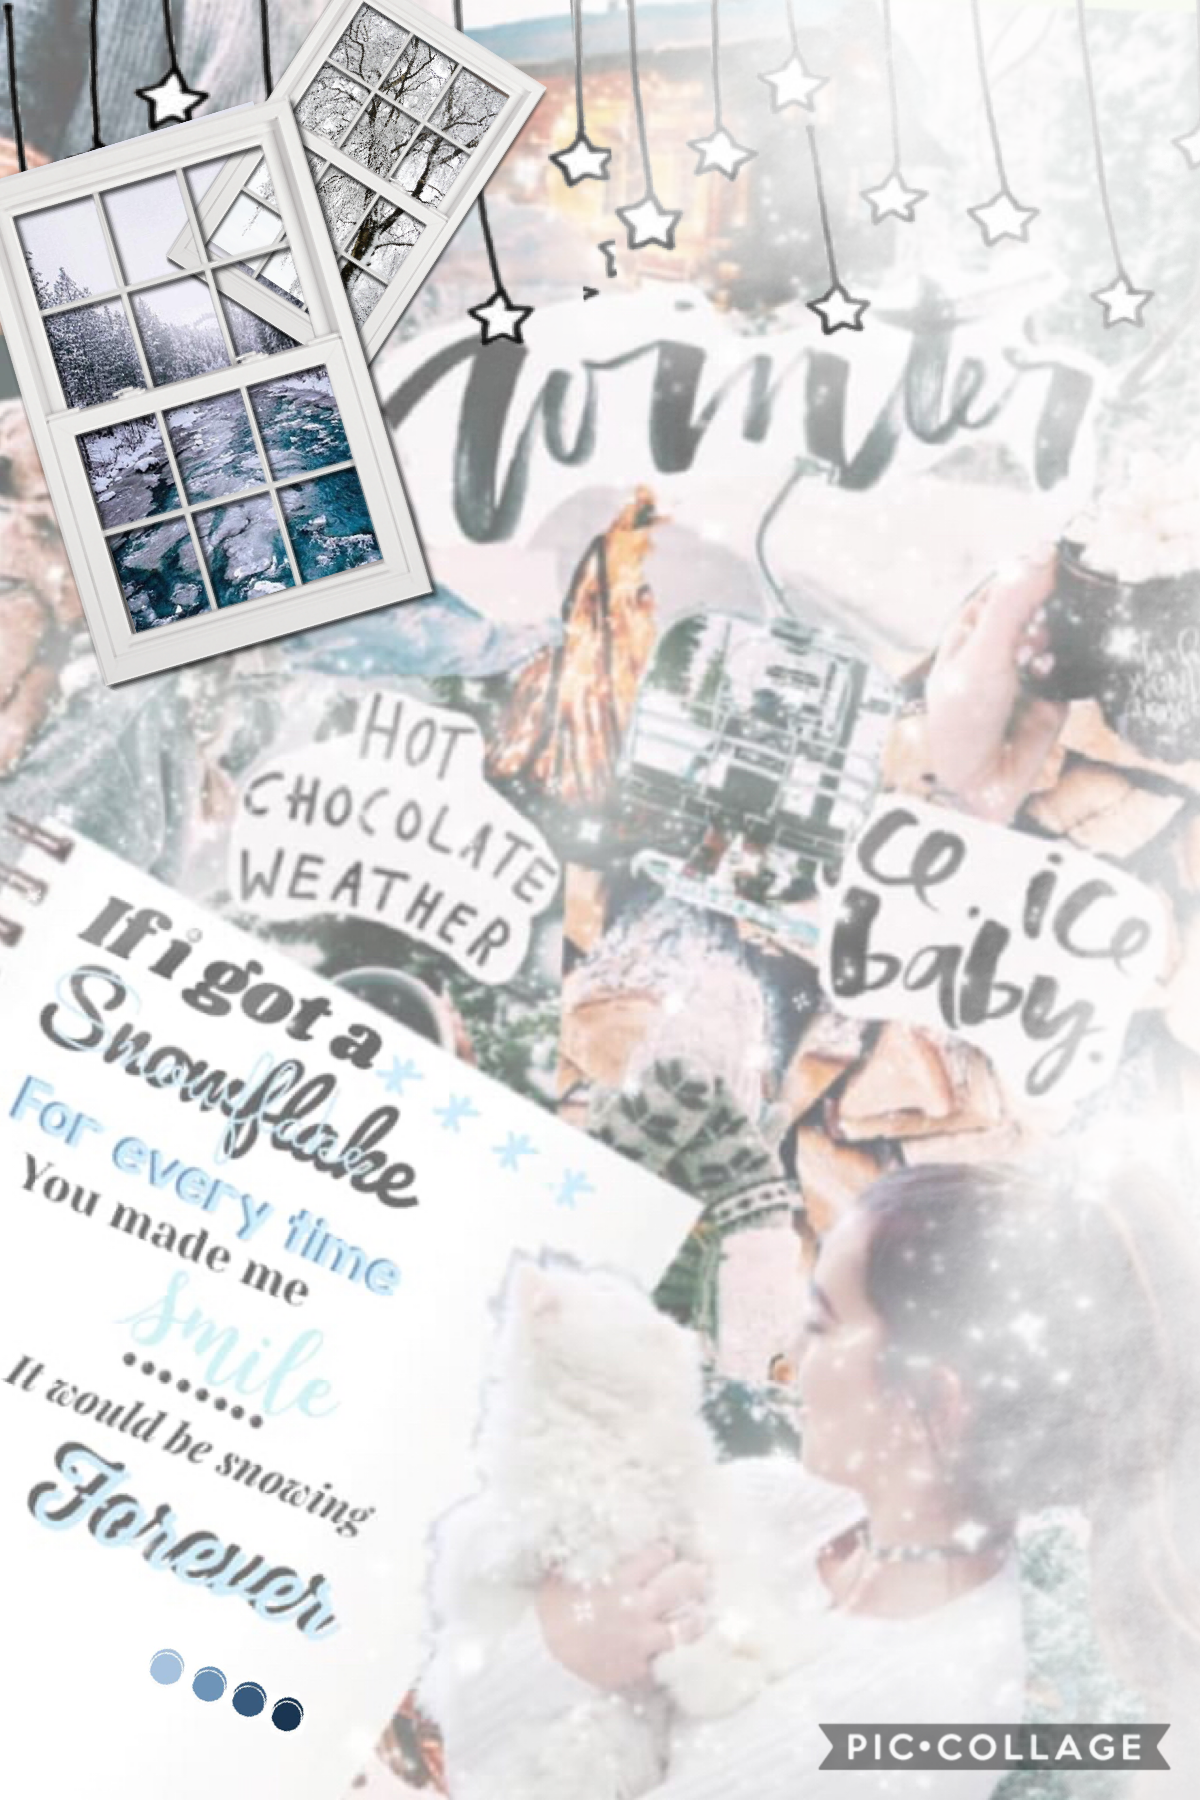 Collab with.... XxsunflowerxXx She did the beautiful text and I did the bg and pngs! She's so talented go check out her page!☀️💎